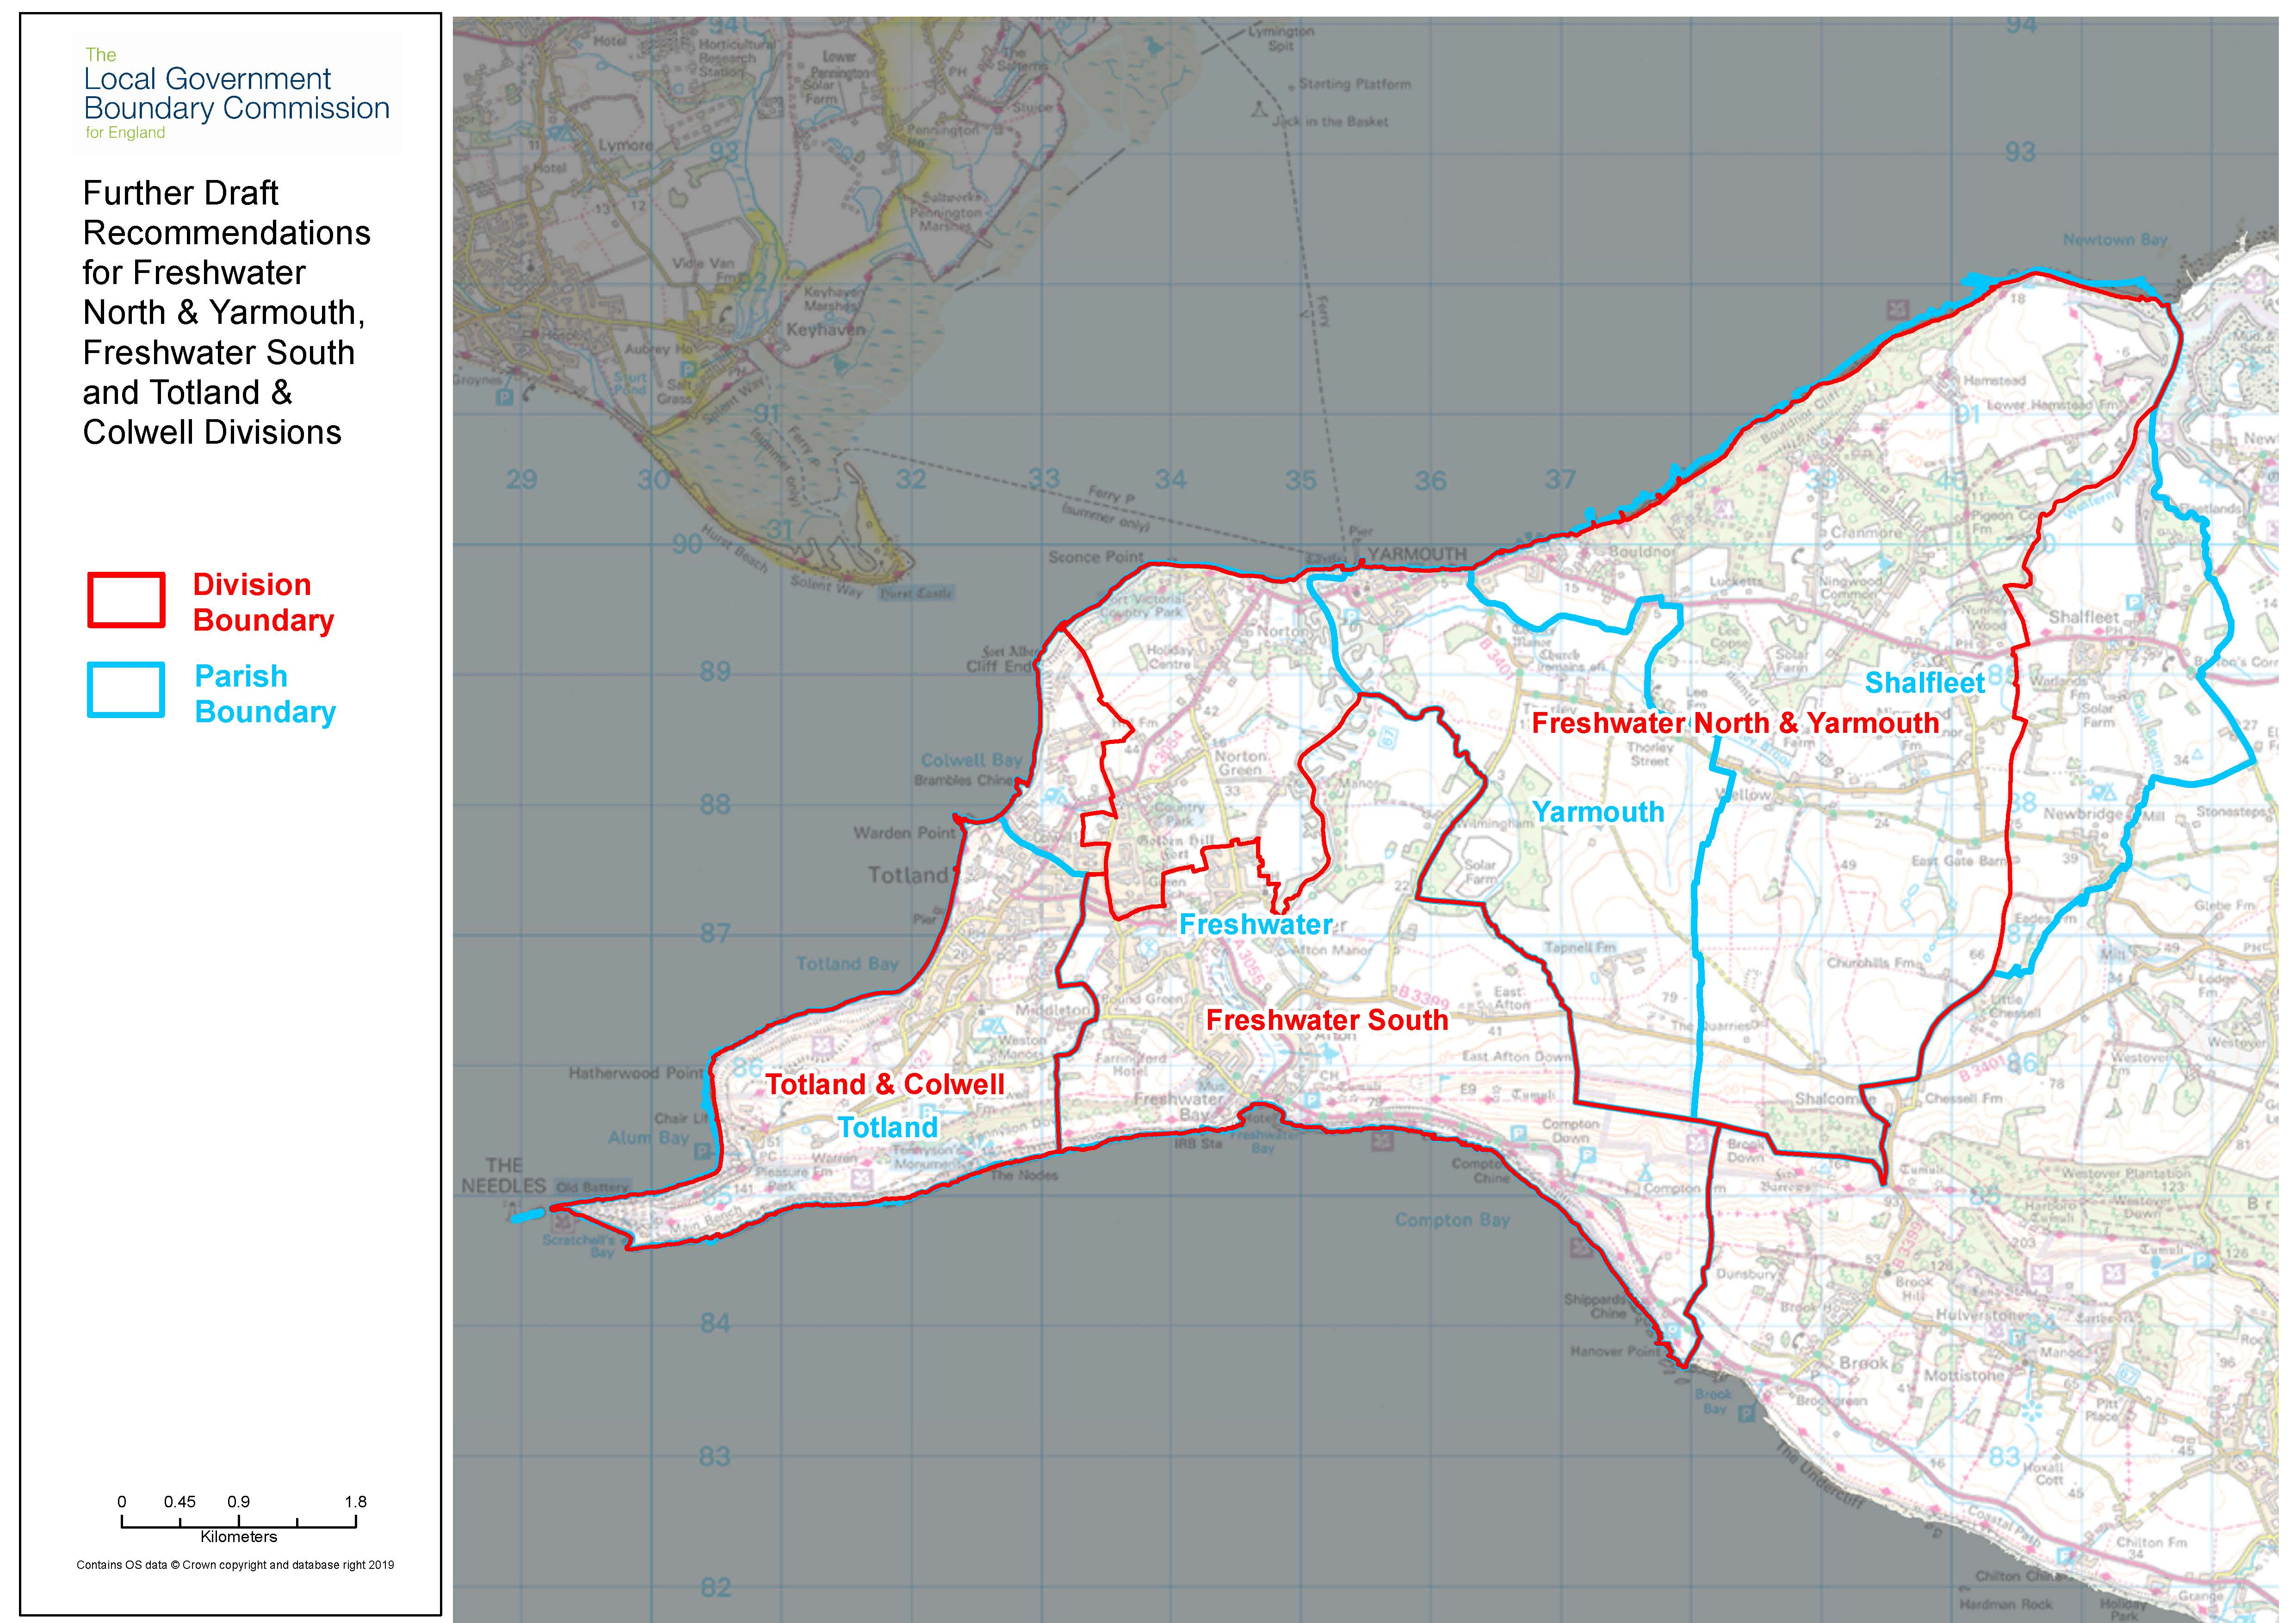 Further draft recommendations mapping for Freshwater